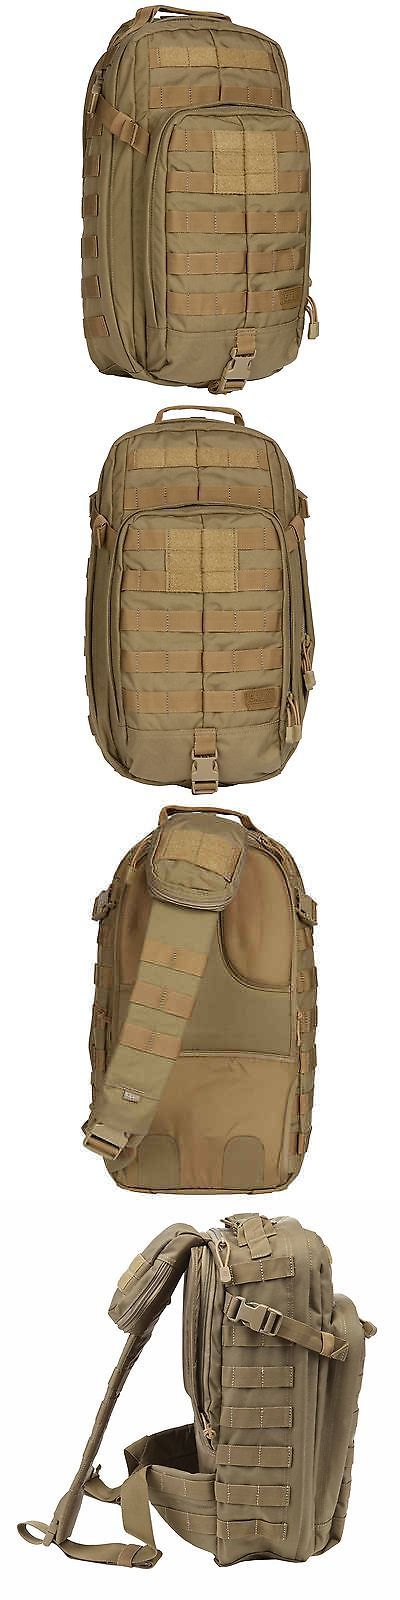 Tactical Bags and Packs 177899: 5.11 Tactical Rush Moab 10 Sandstone Go Bug Out Bag Mobile Operation Attachment BUY IT NOW ONLY: $89.99